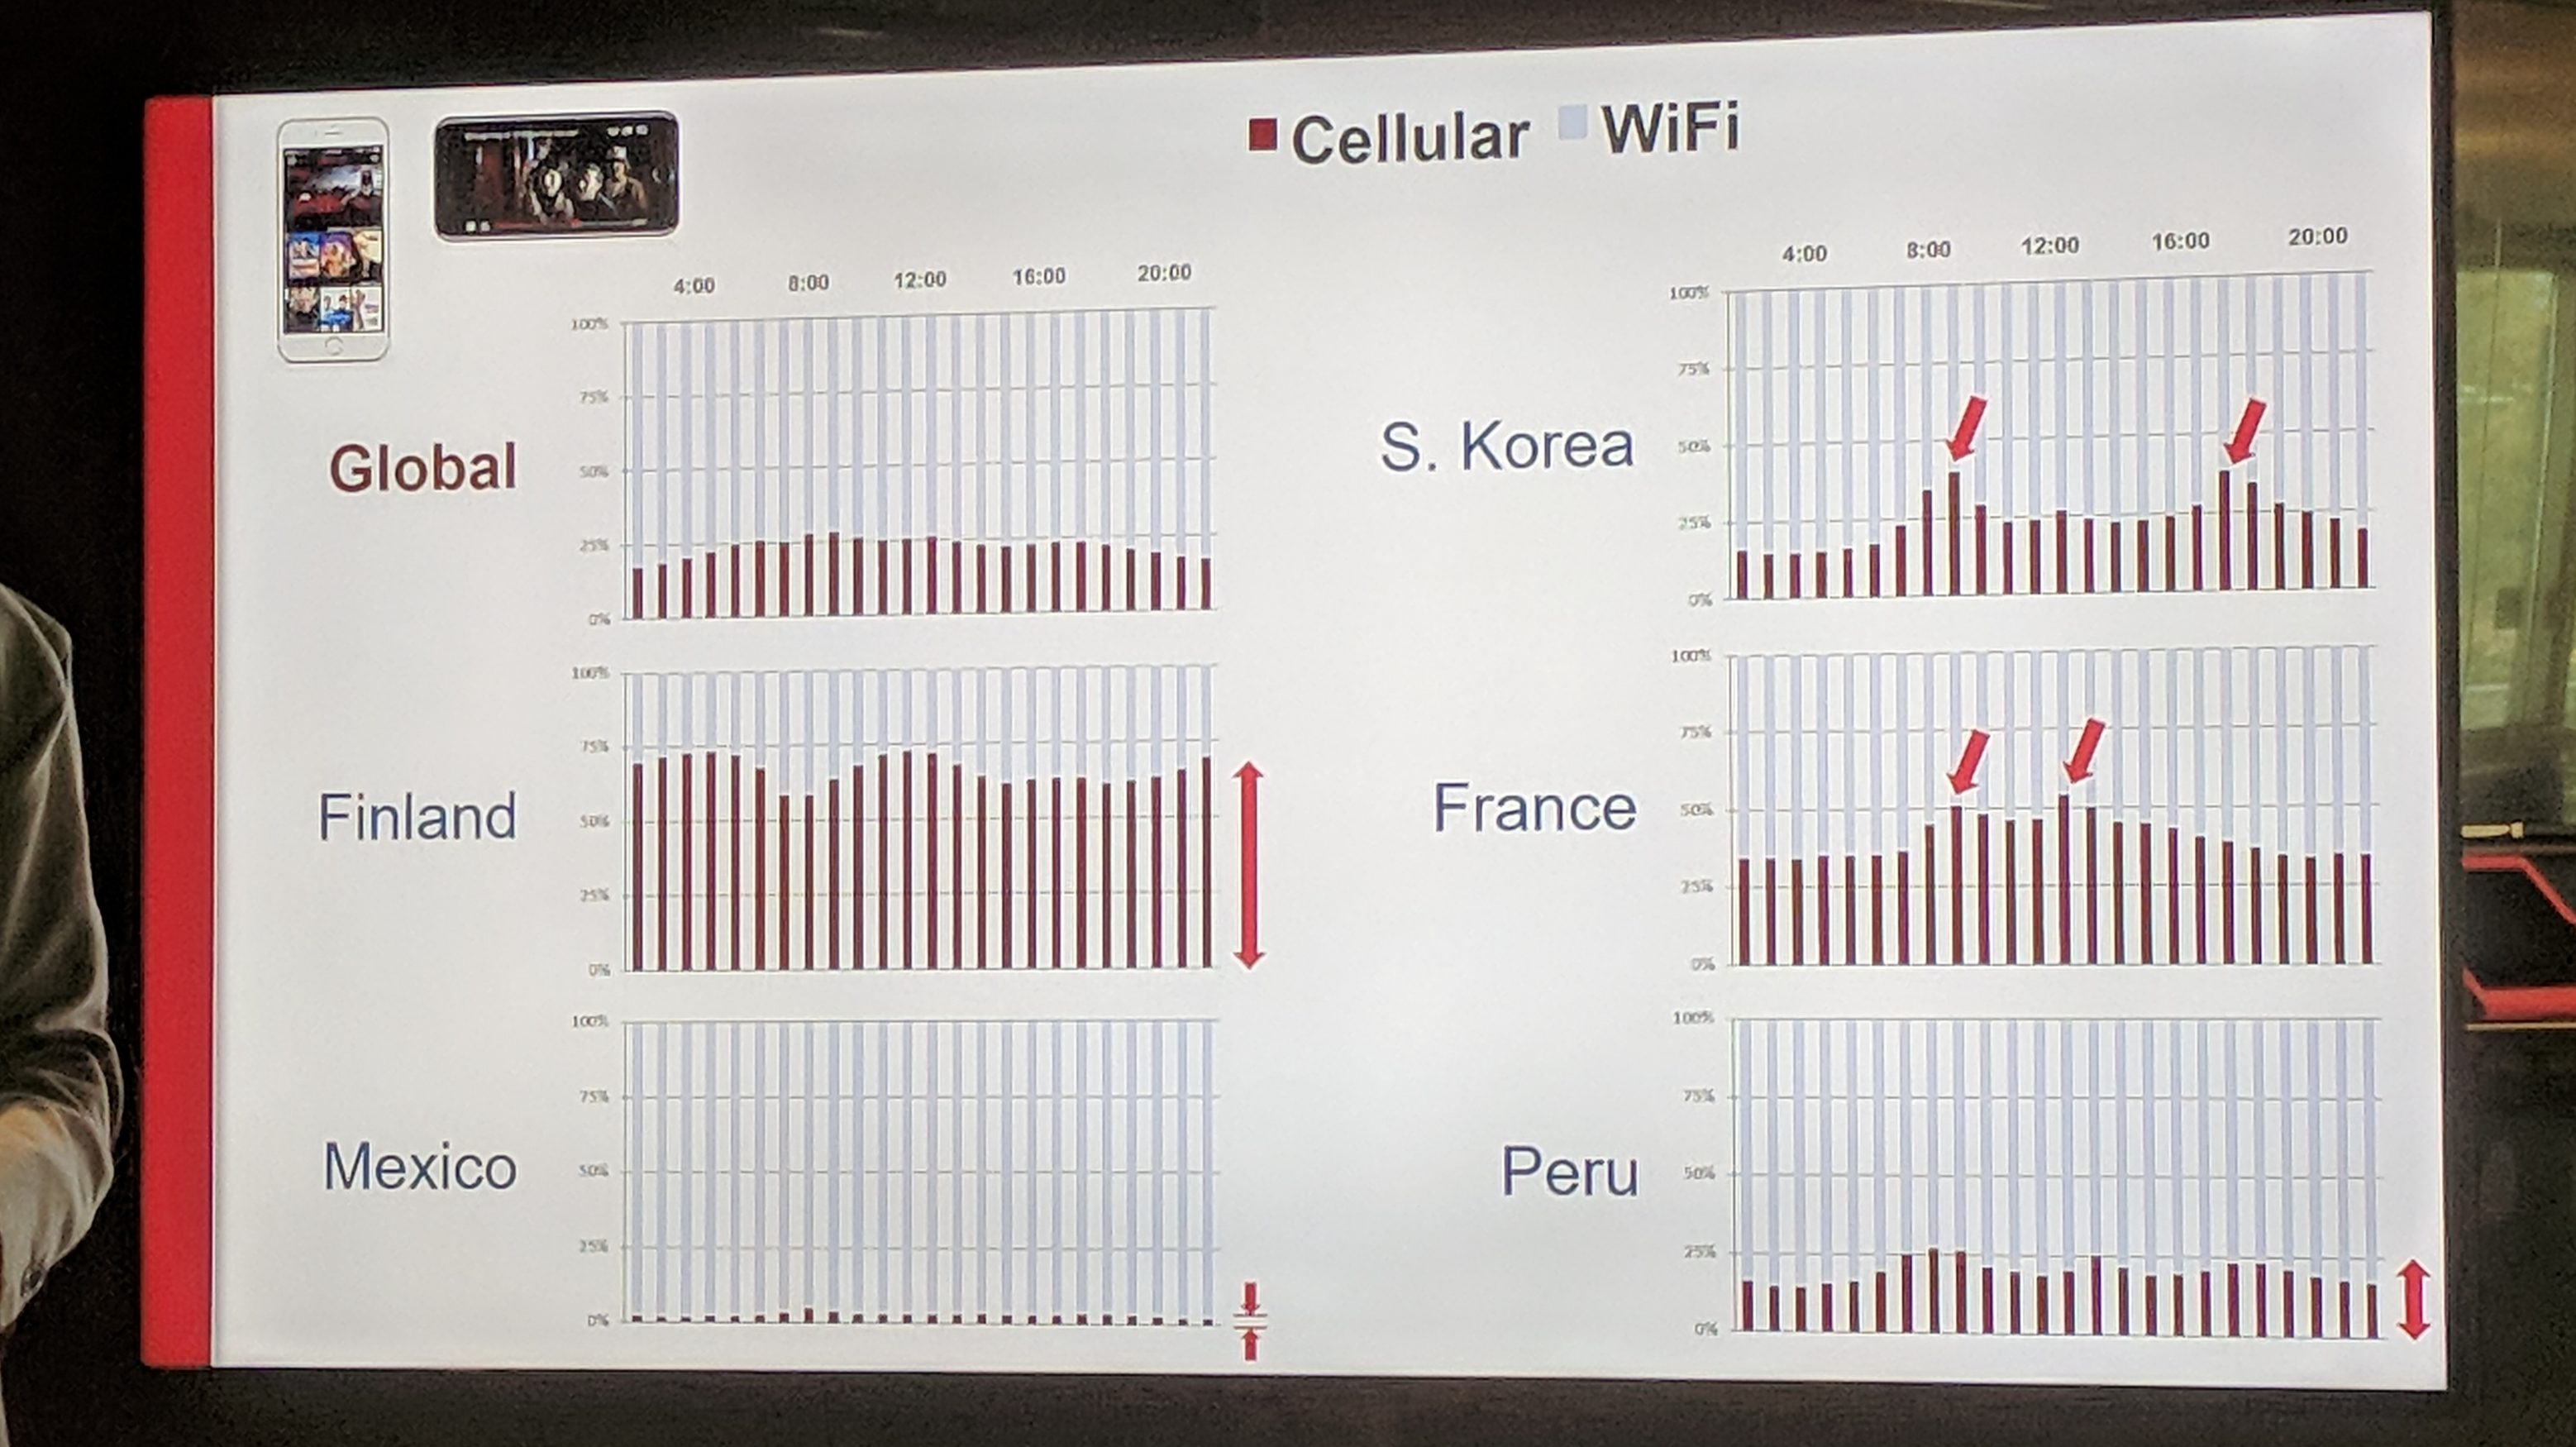 Netflix cellular vs Wifi usage